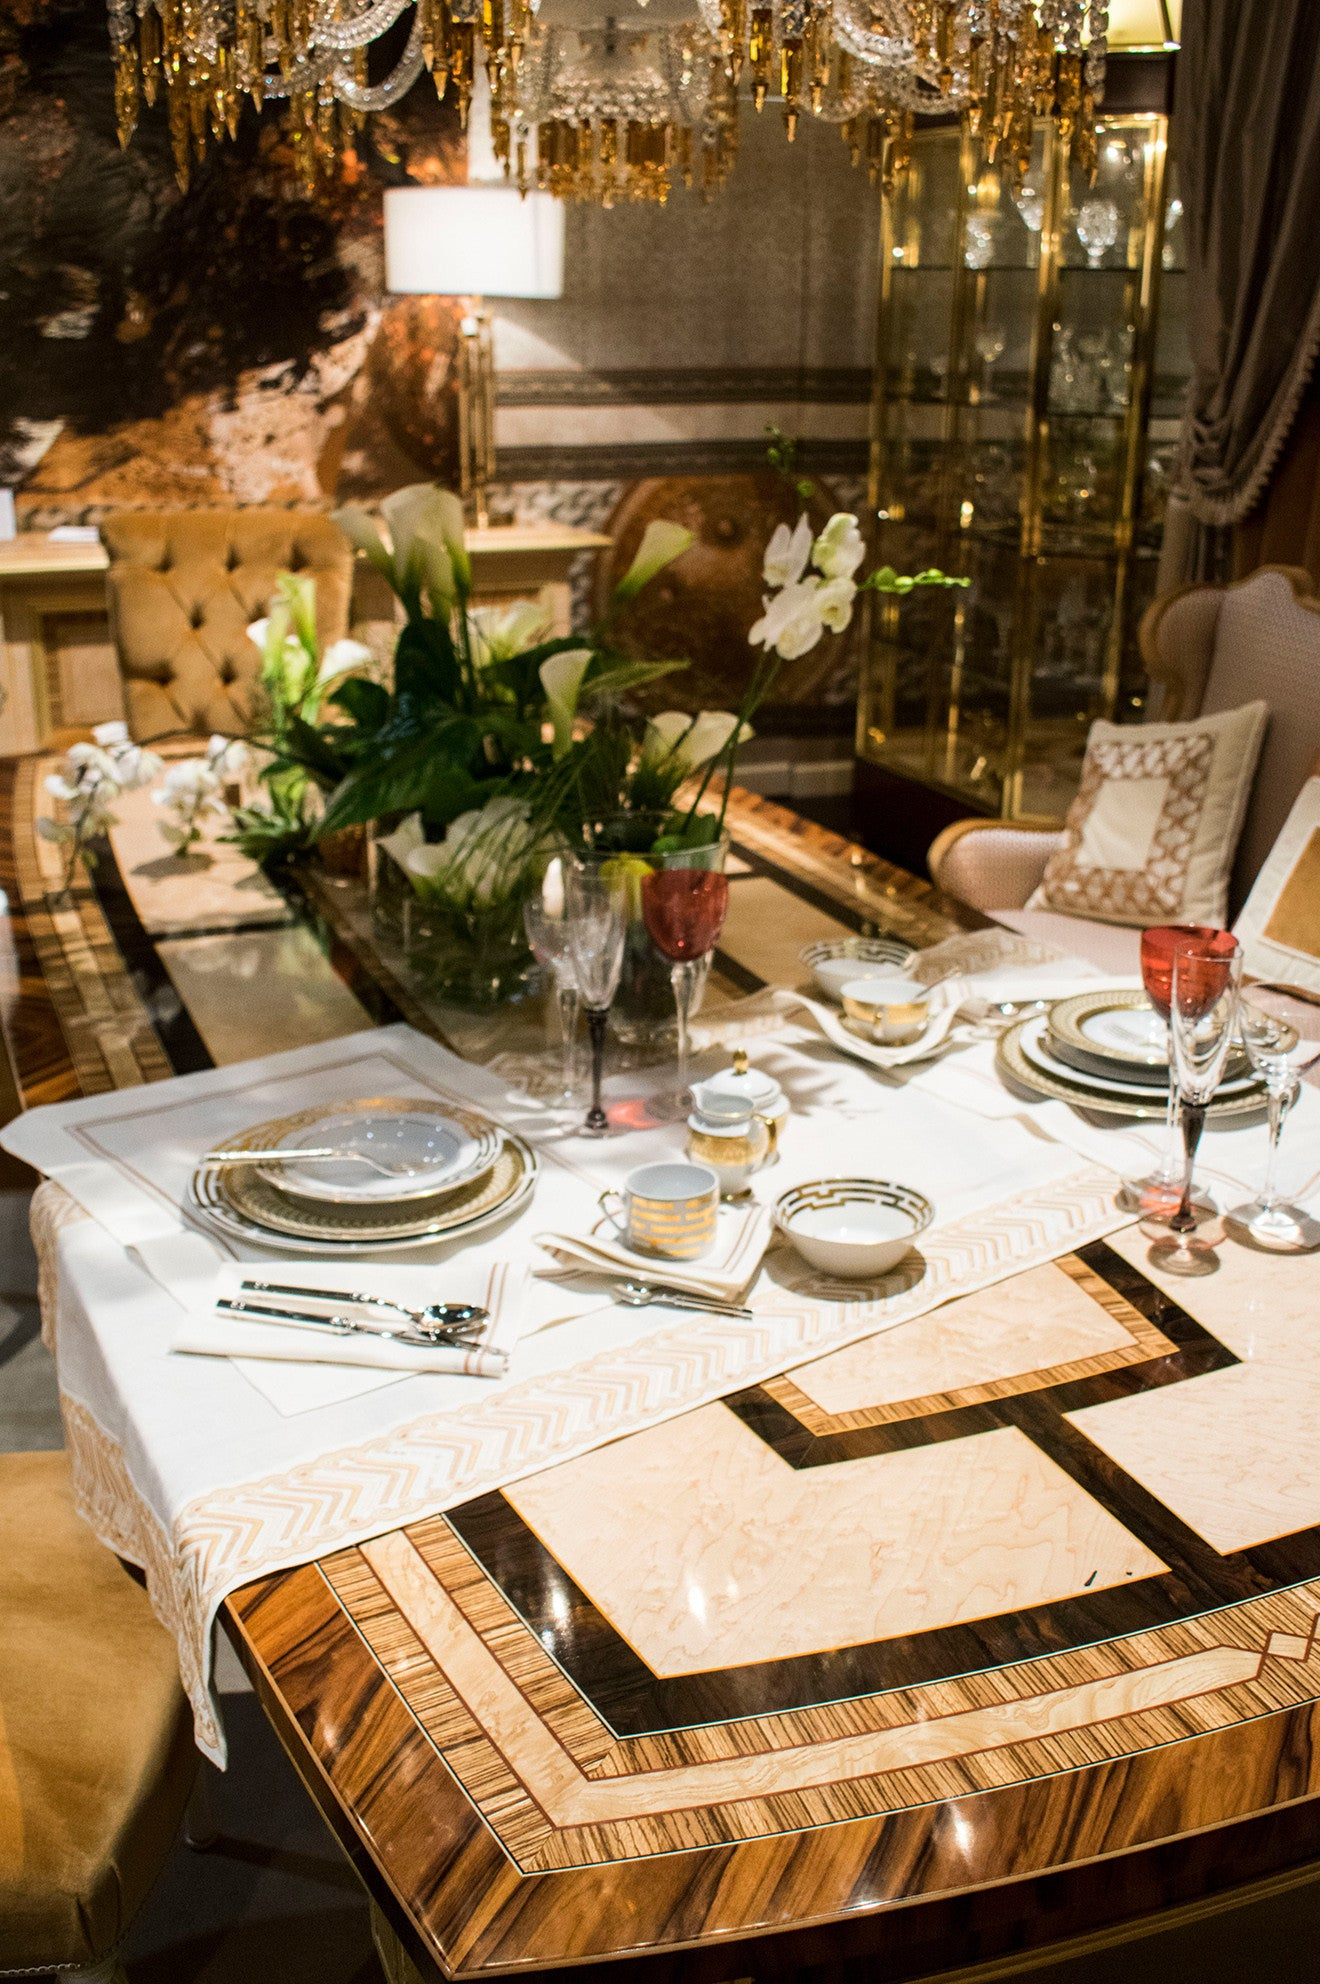 Provasi luxurious dining table setting Salone del Mobile